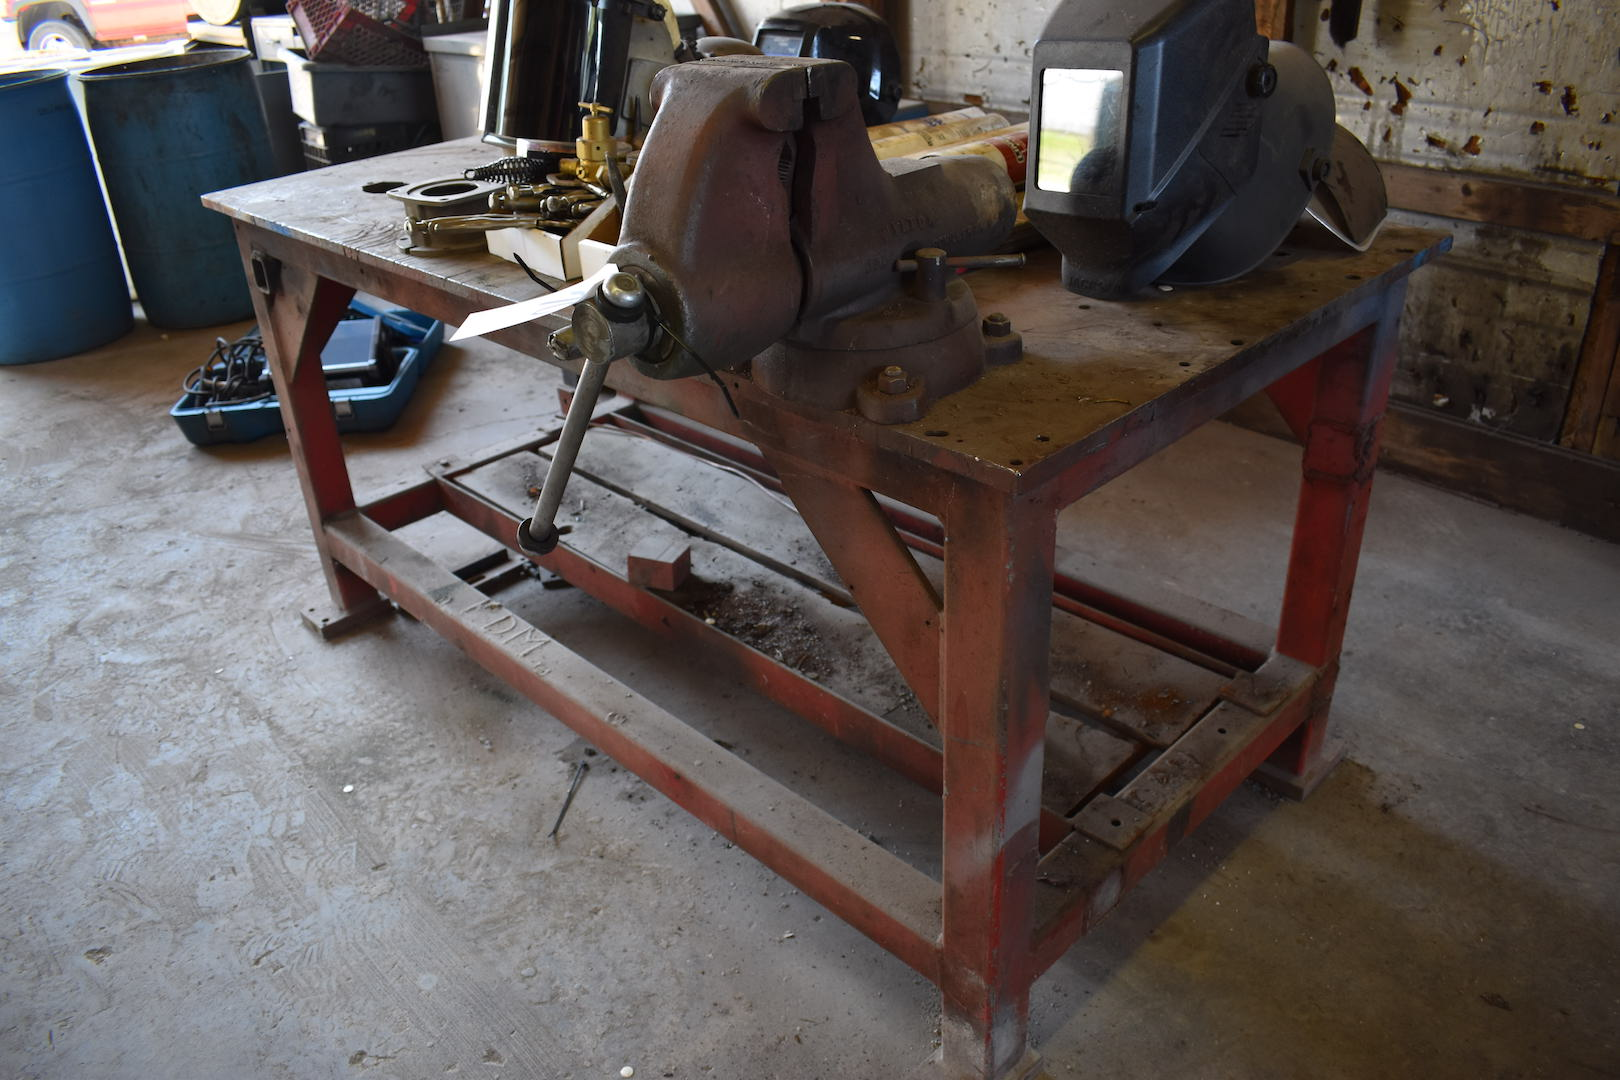 Lot 70 - 36 in. x 70 in. Steel Welding Table with Wilton 5 in. Bench Vise